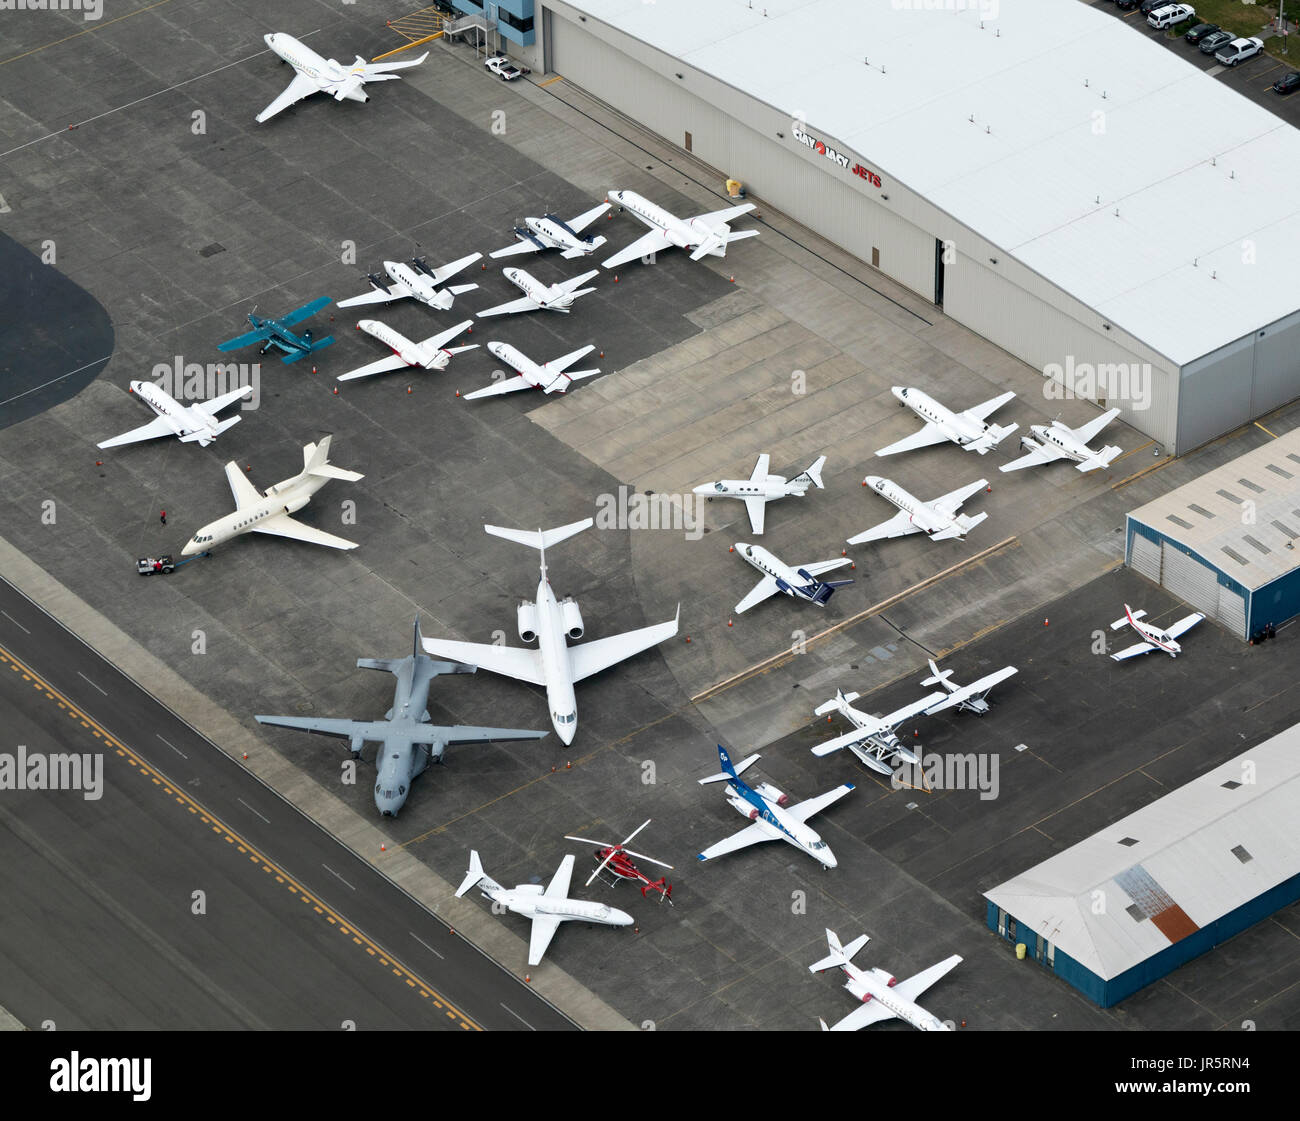 aerial view of private jets outside Clay Lacy Aviation hangar, Boeing Field, Seattle, Washington State, USA Stock Photo